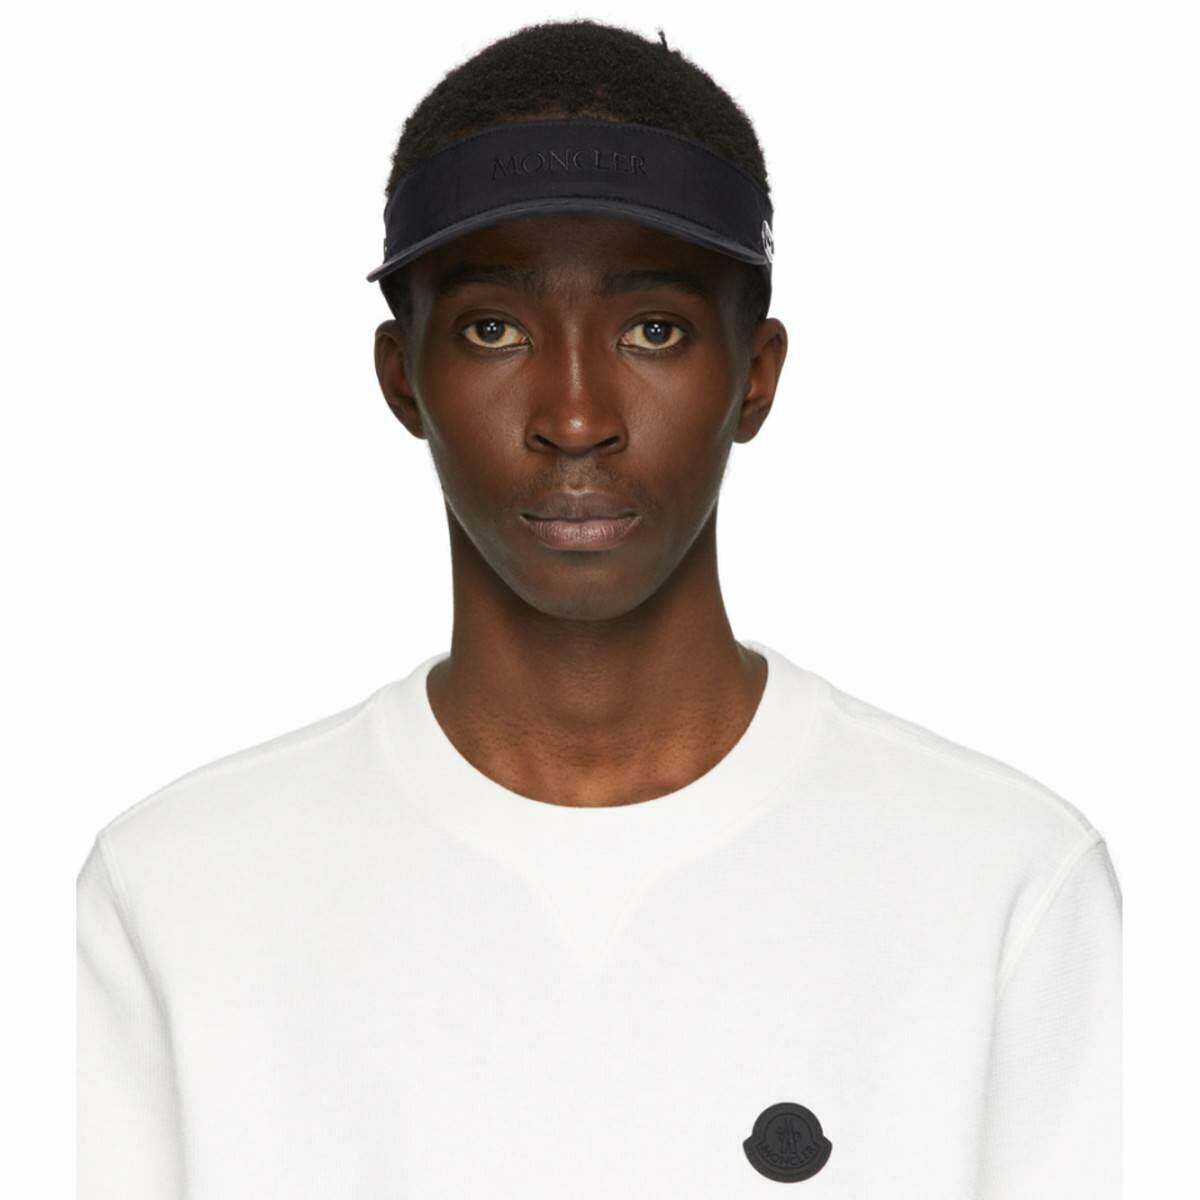 Moncler Black Tennis Cap Ssense USA MEN Men ACCESSORIES Mens CAPS